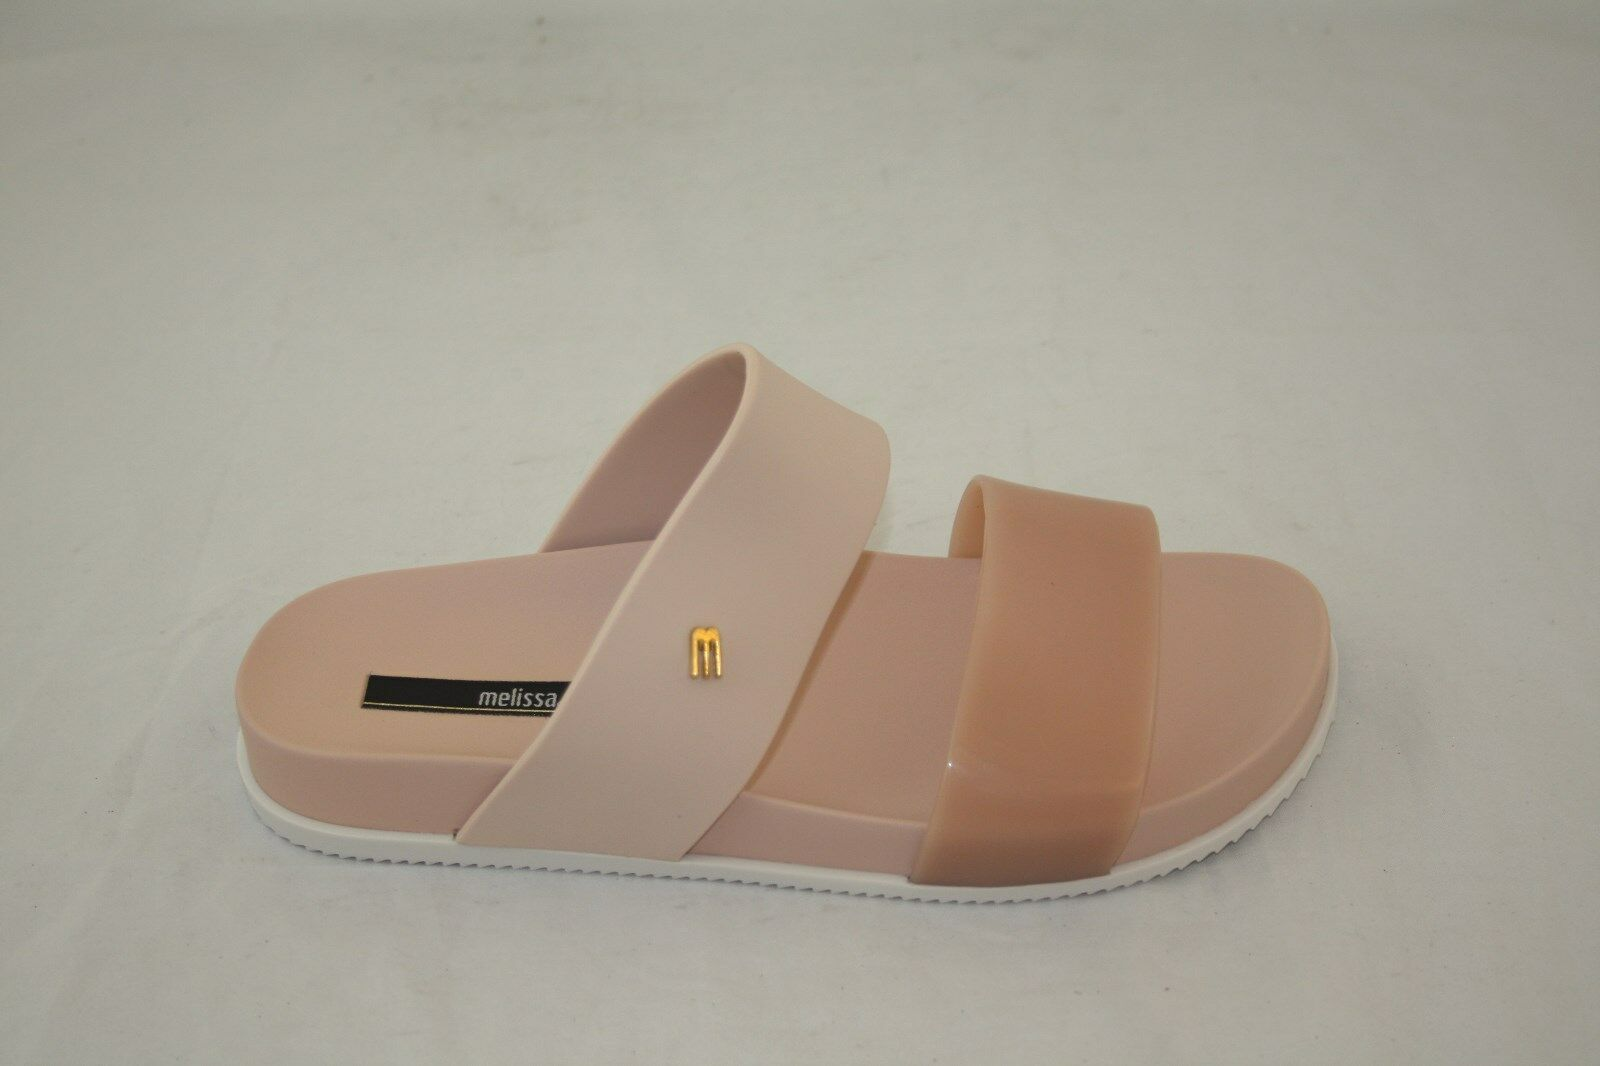 NEW 31613 MELISSA COSMIC AD 01276 LIGHT PINK SLIDES SANDAL